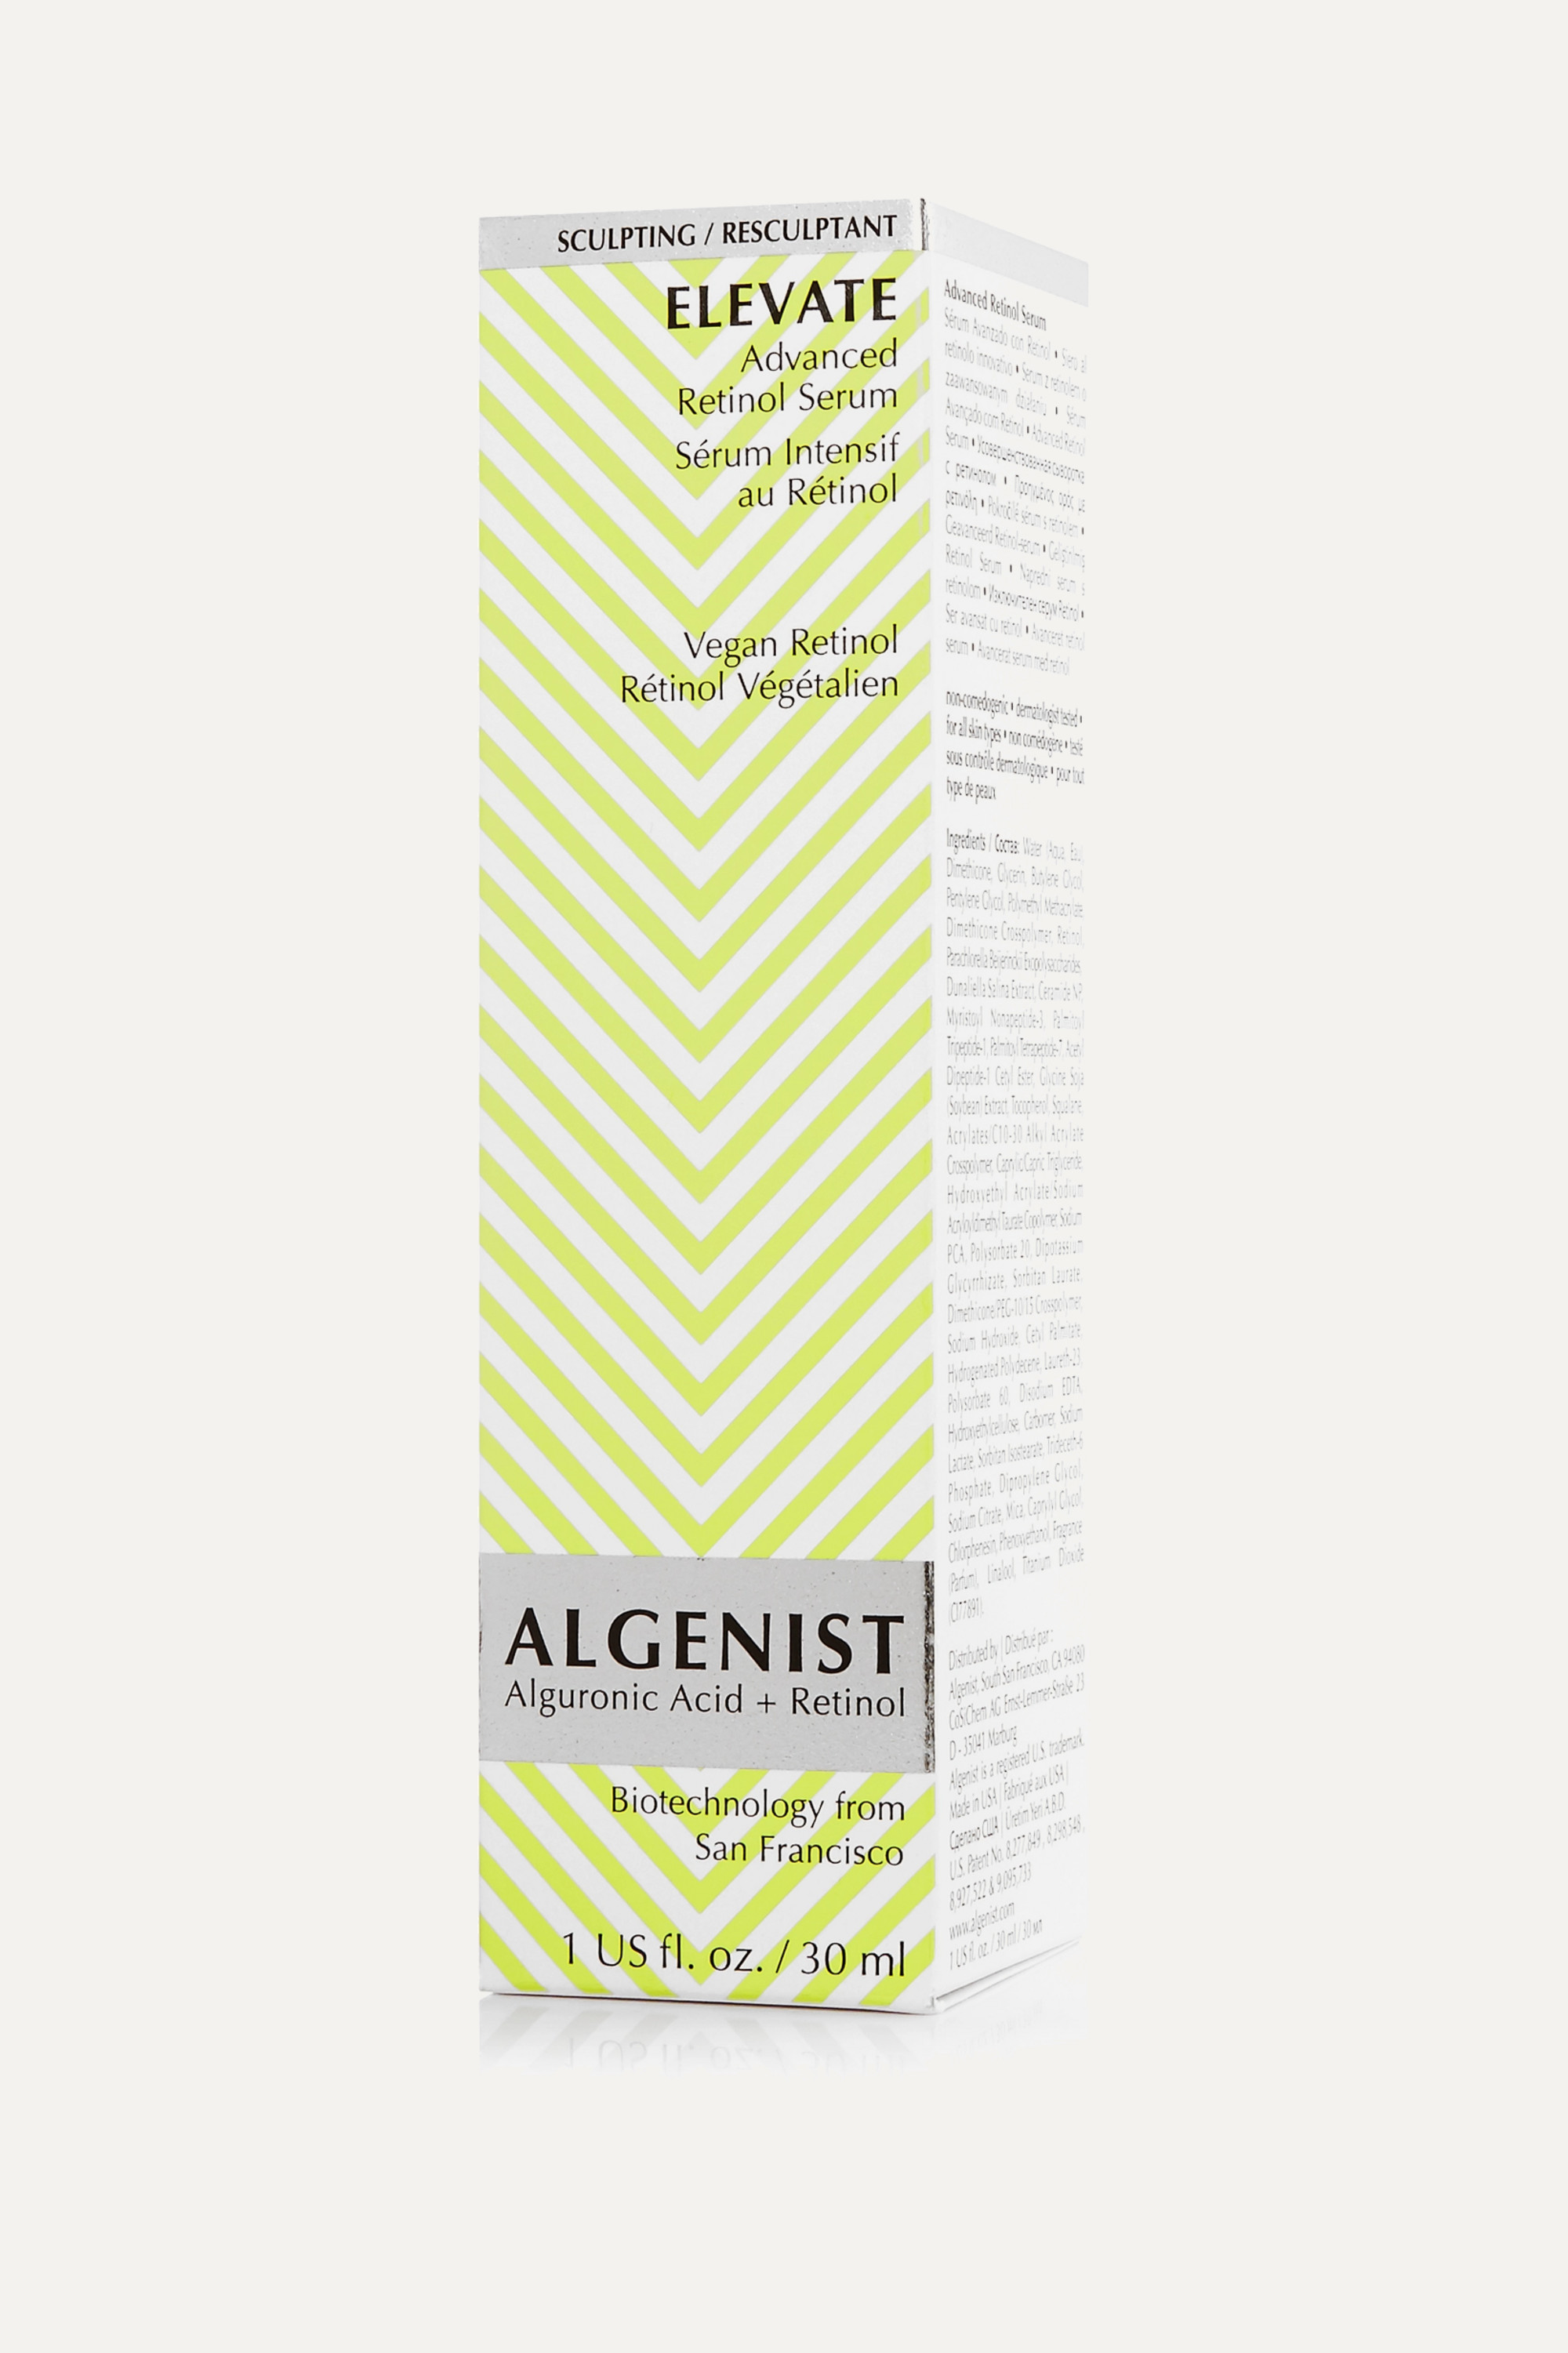 Algenist ELEVATE Advanced Retinol Serum, 30ml